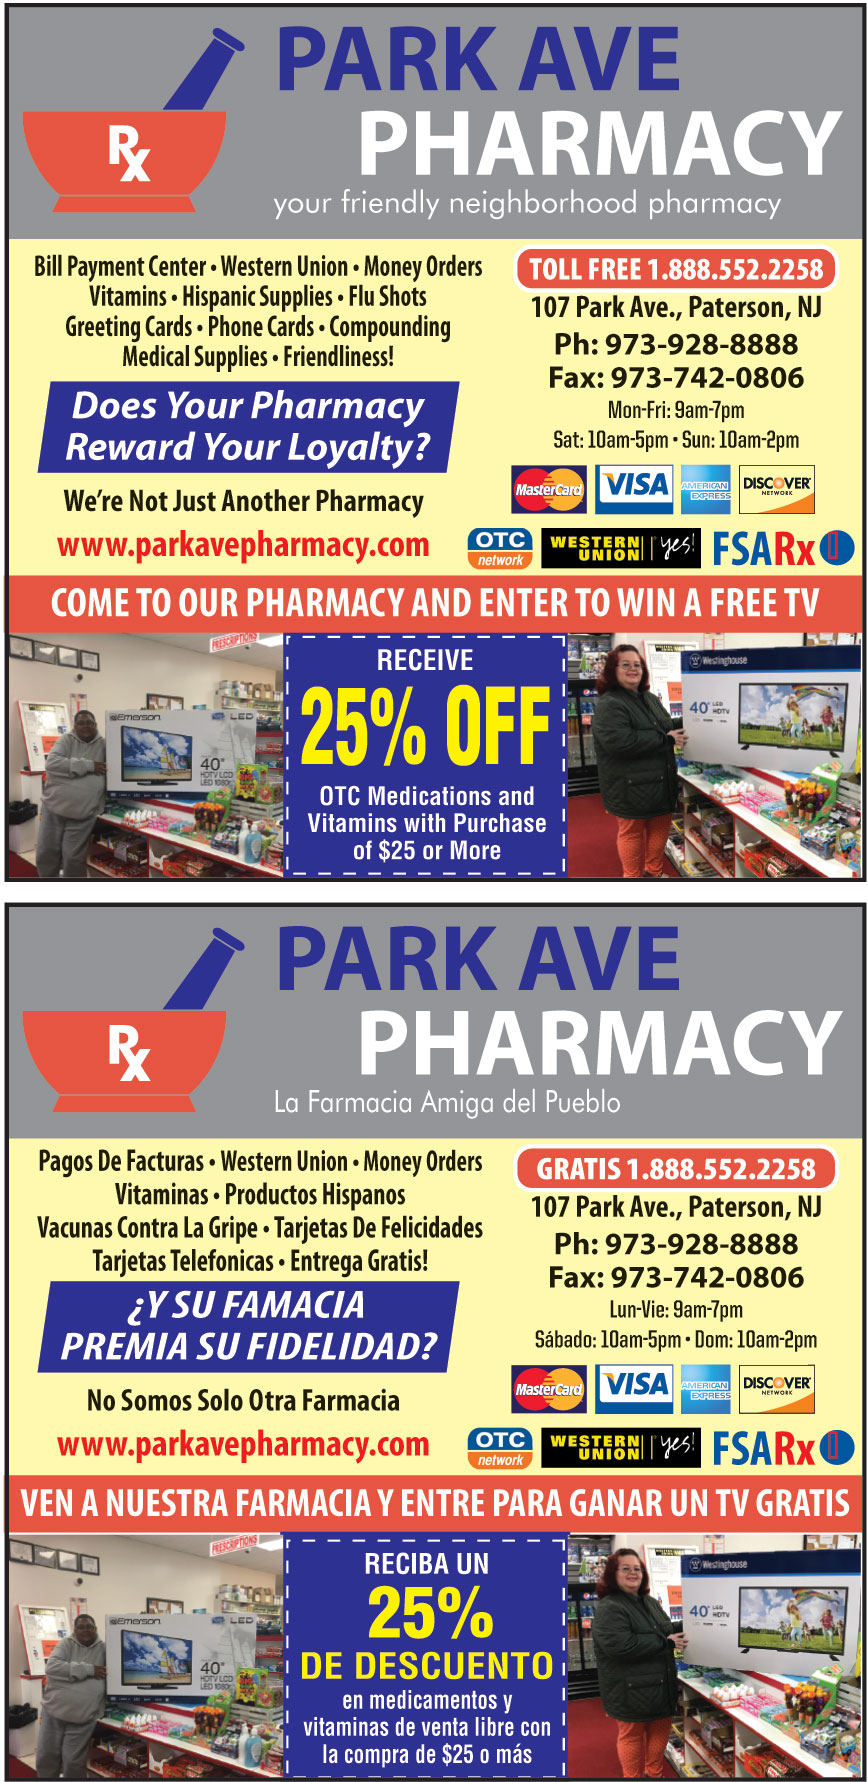 PARK AVE PHARMACY